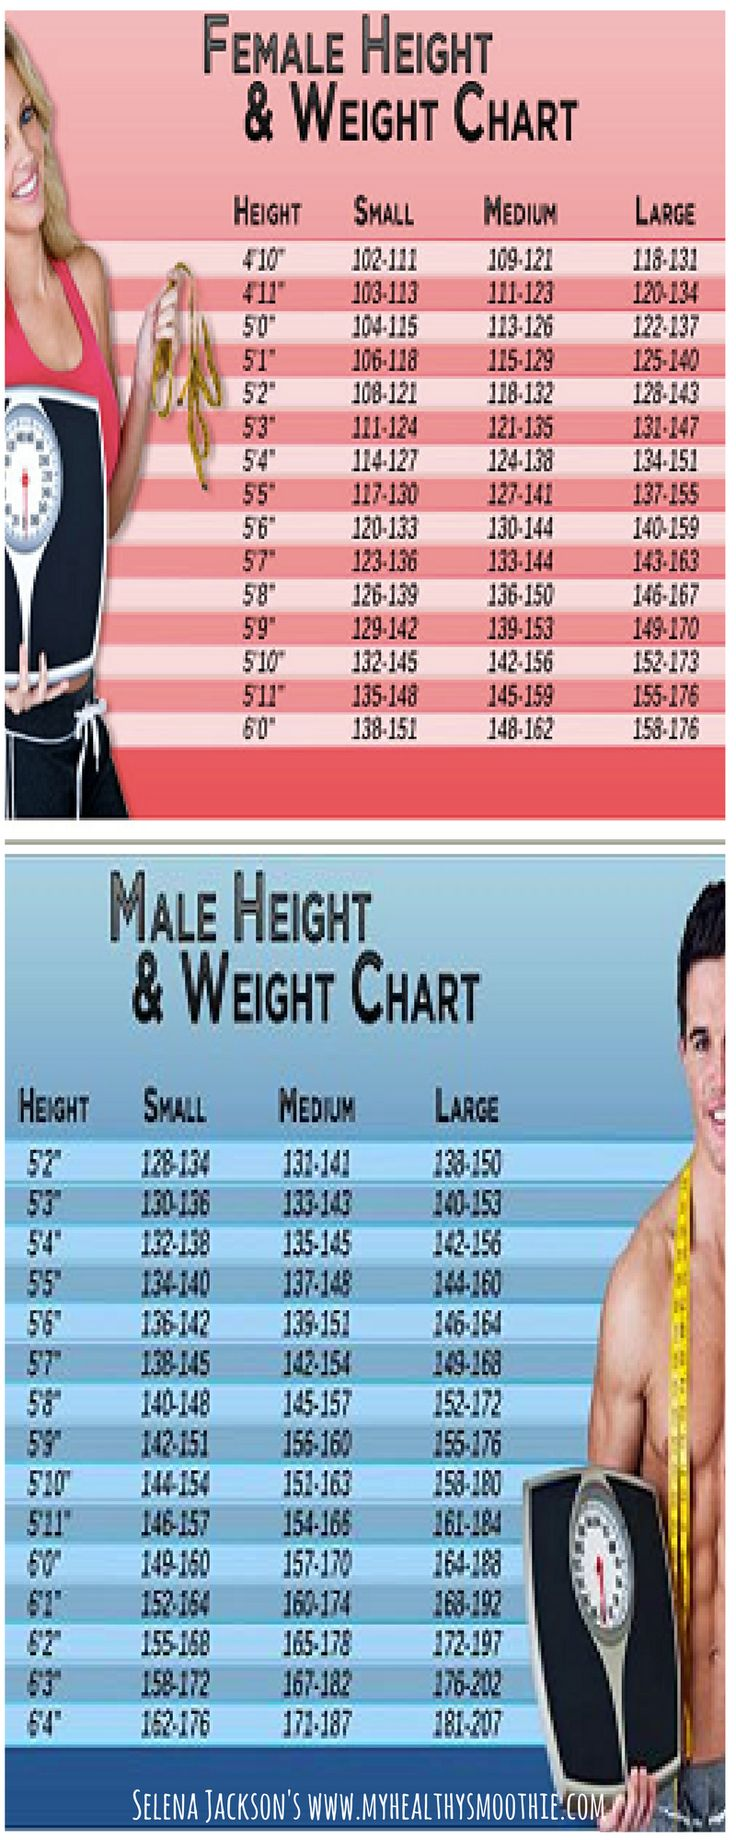 In recent years we have seen two extremes among women when weight is considered. Some women dieting excessively and some women taking pride with being excessively heavy. Namely, finding a stable middle is still the best option for any woman.  Check out the chart and see where you stand and what your ideal weight should be.